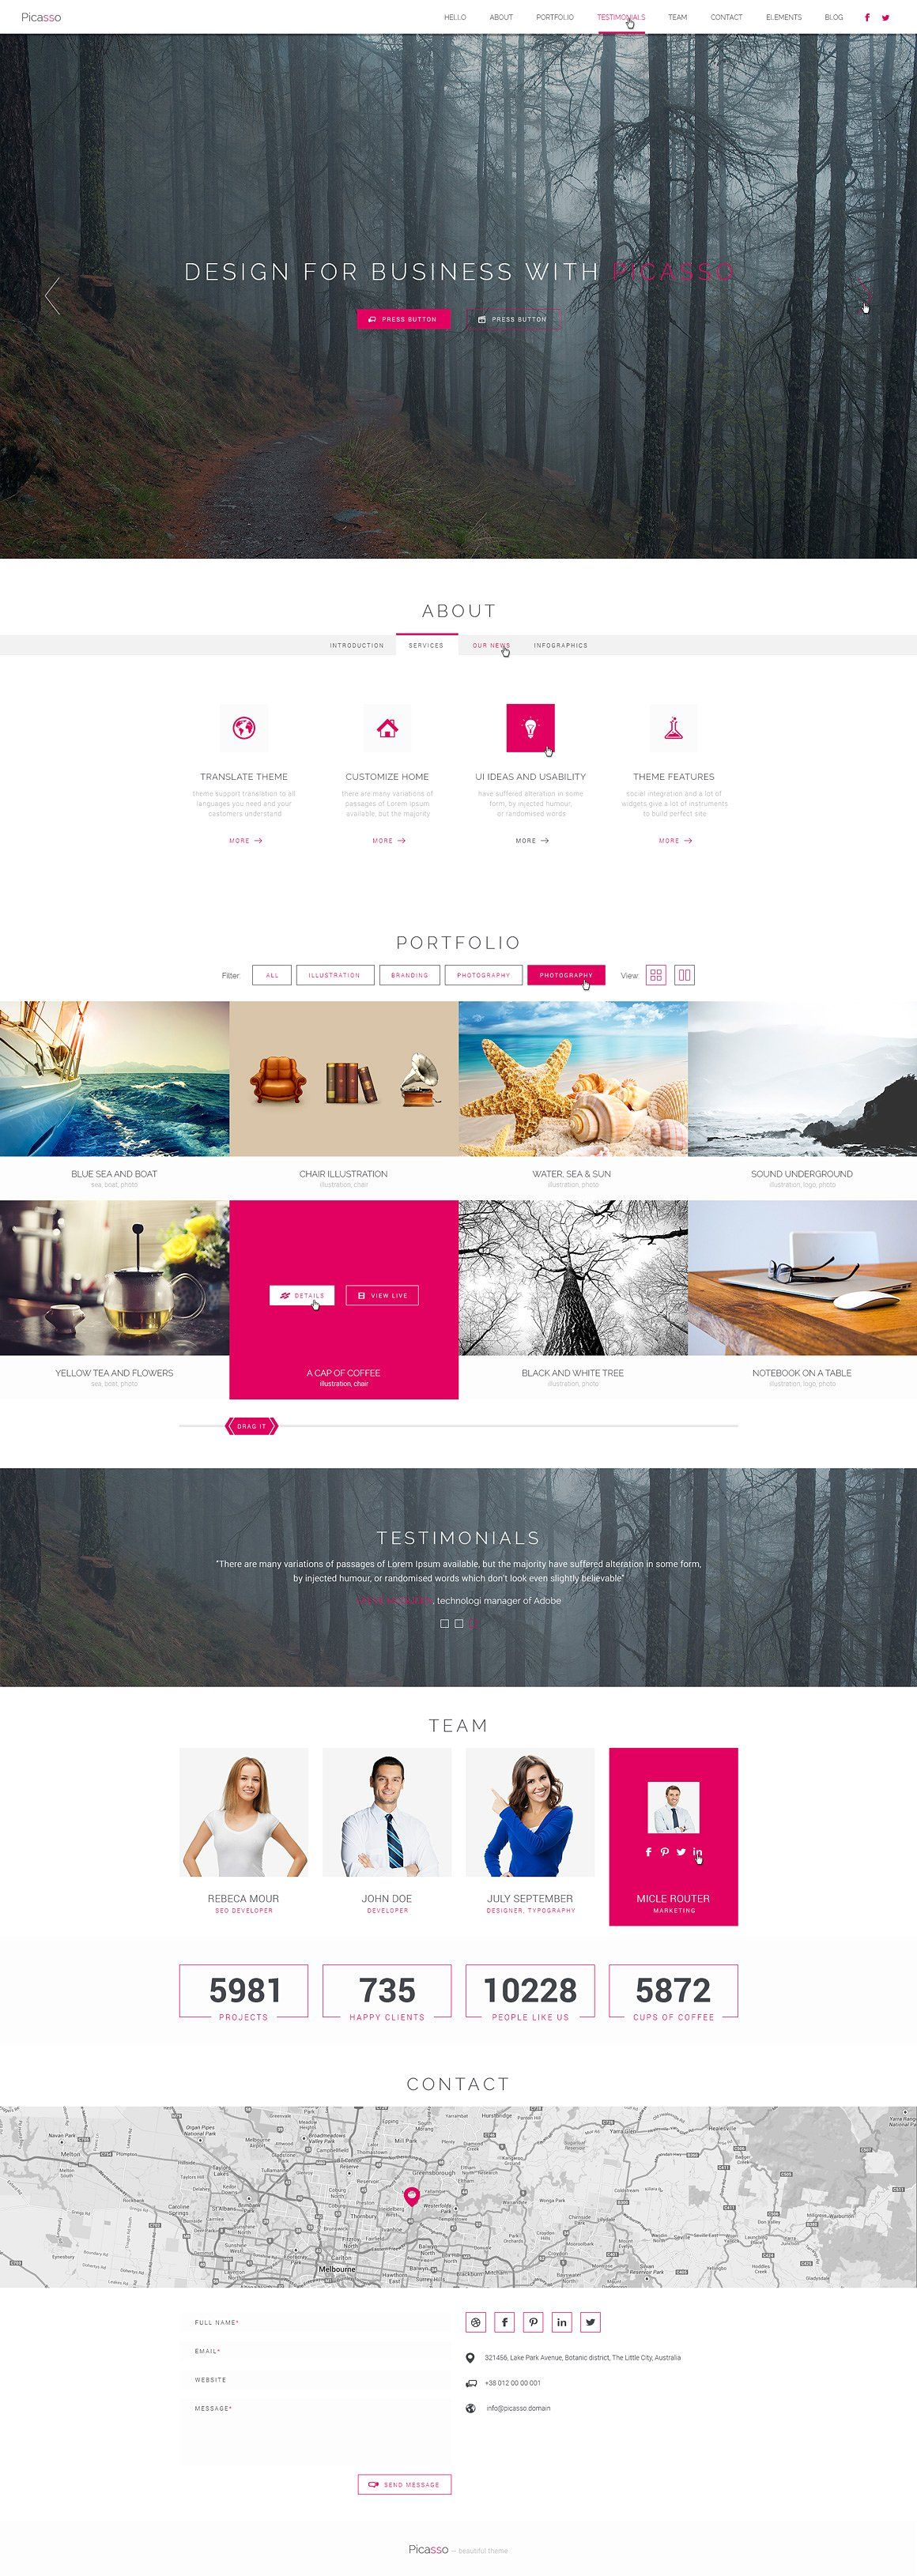 Picasso Html Css Theme Html Css Html5 Templates Photoshop Website